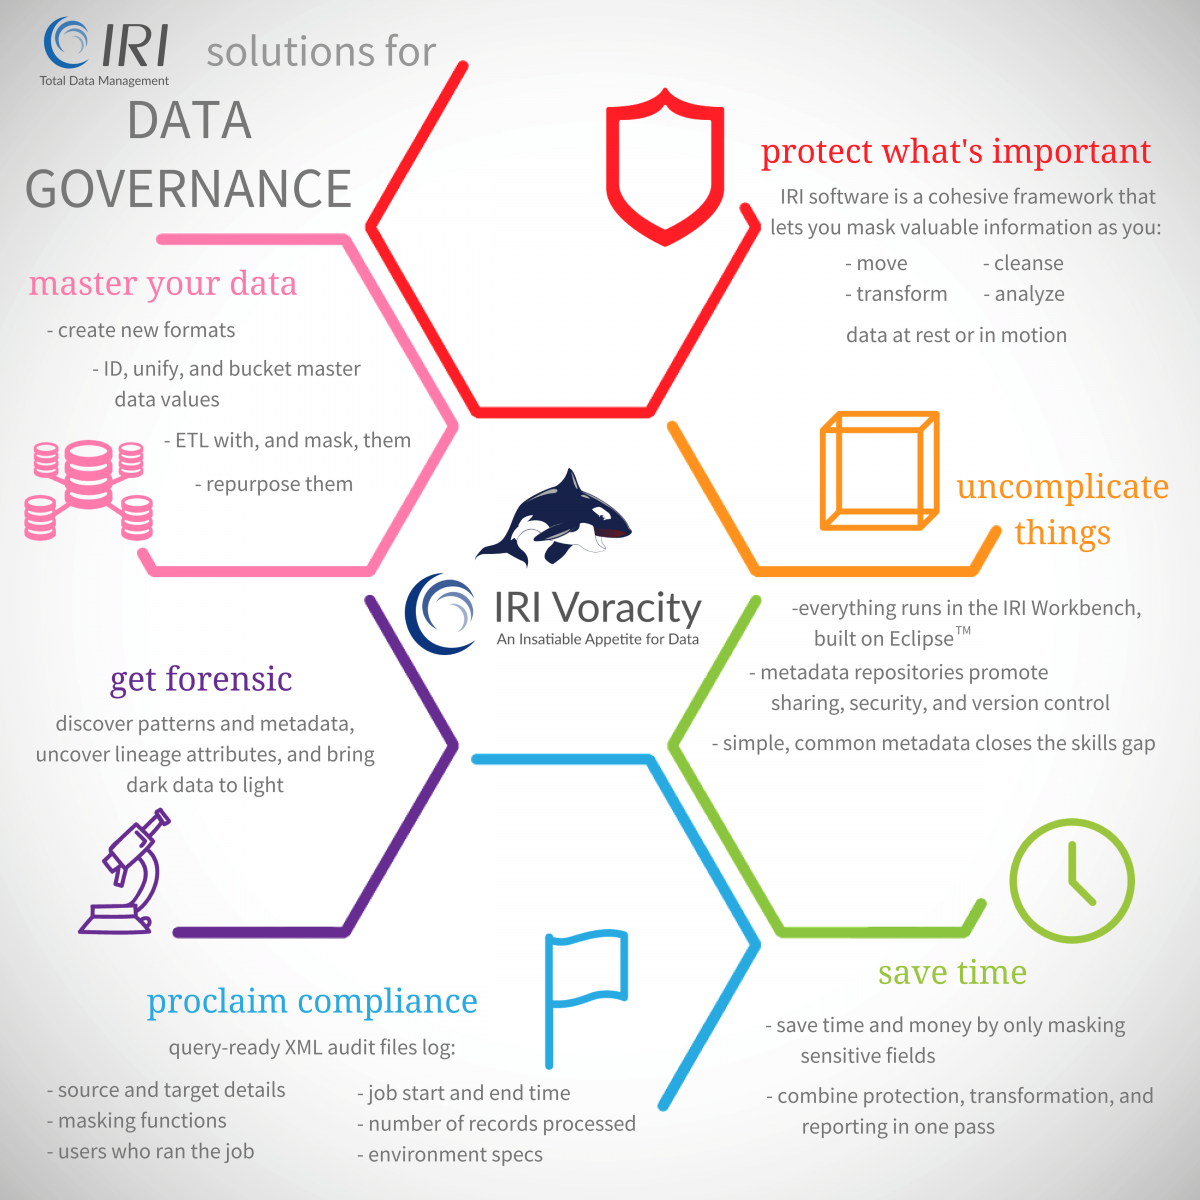 IRI Voracity solutions for data governance problems